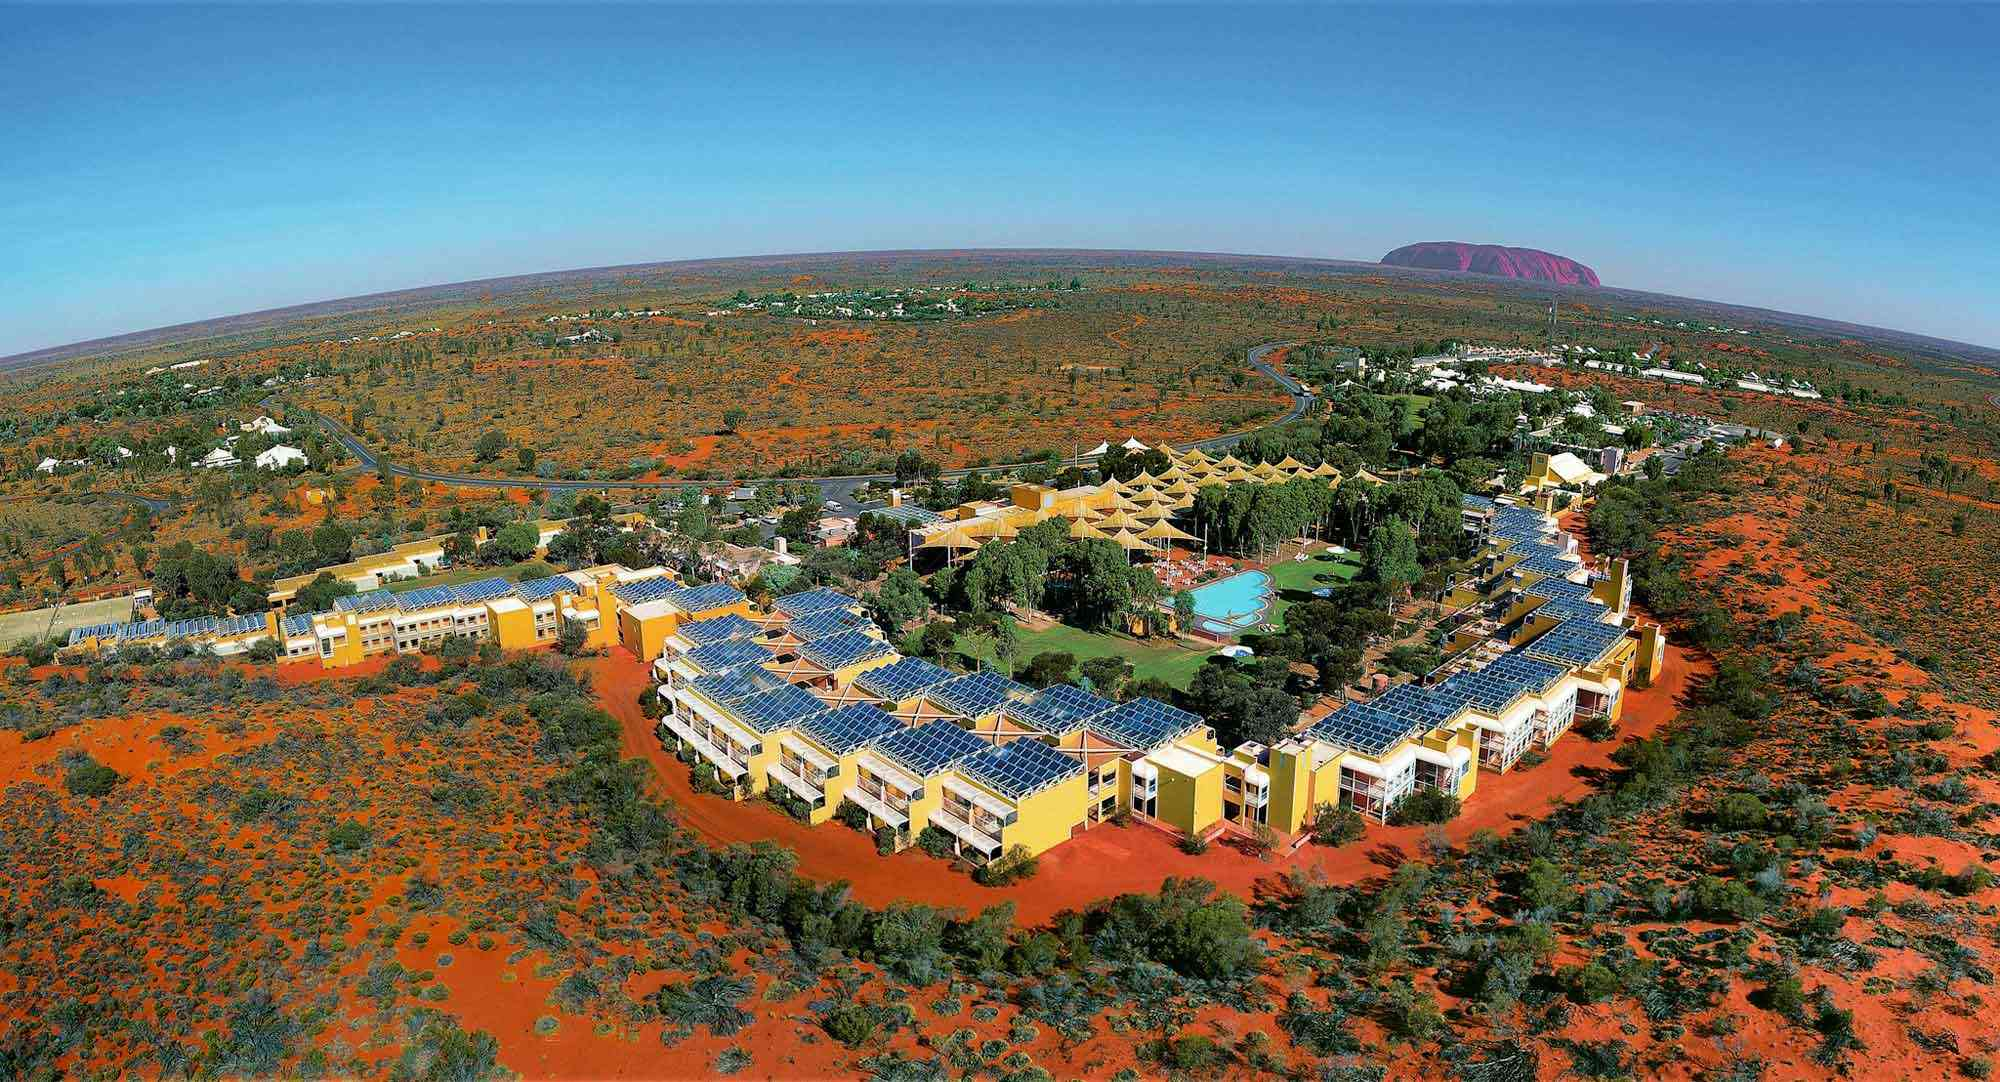 Ayers Rock Uluru hotel Sails in the Desert view